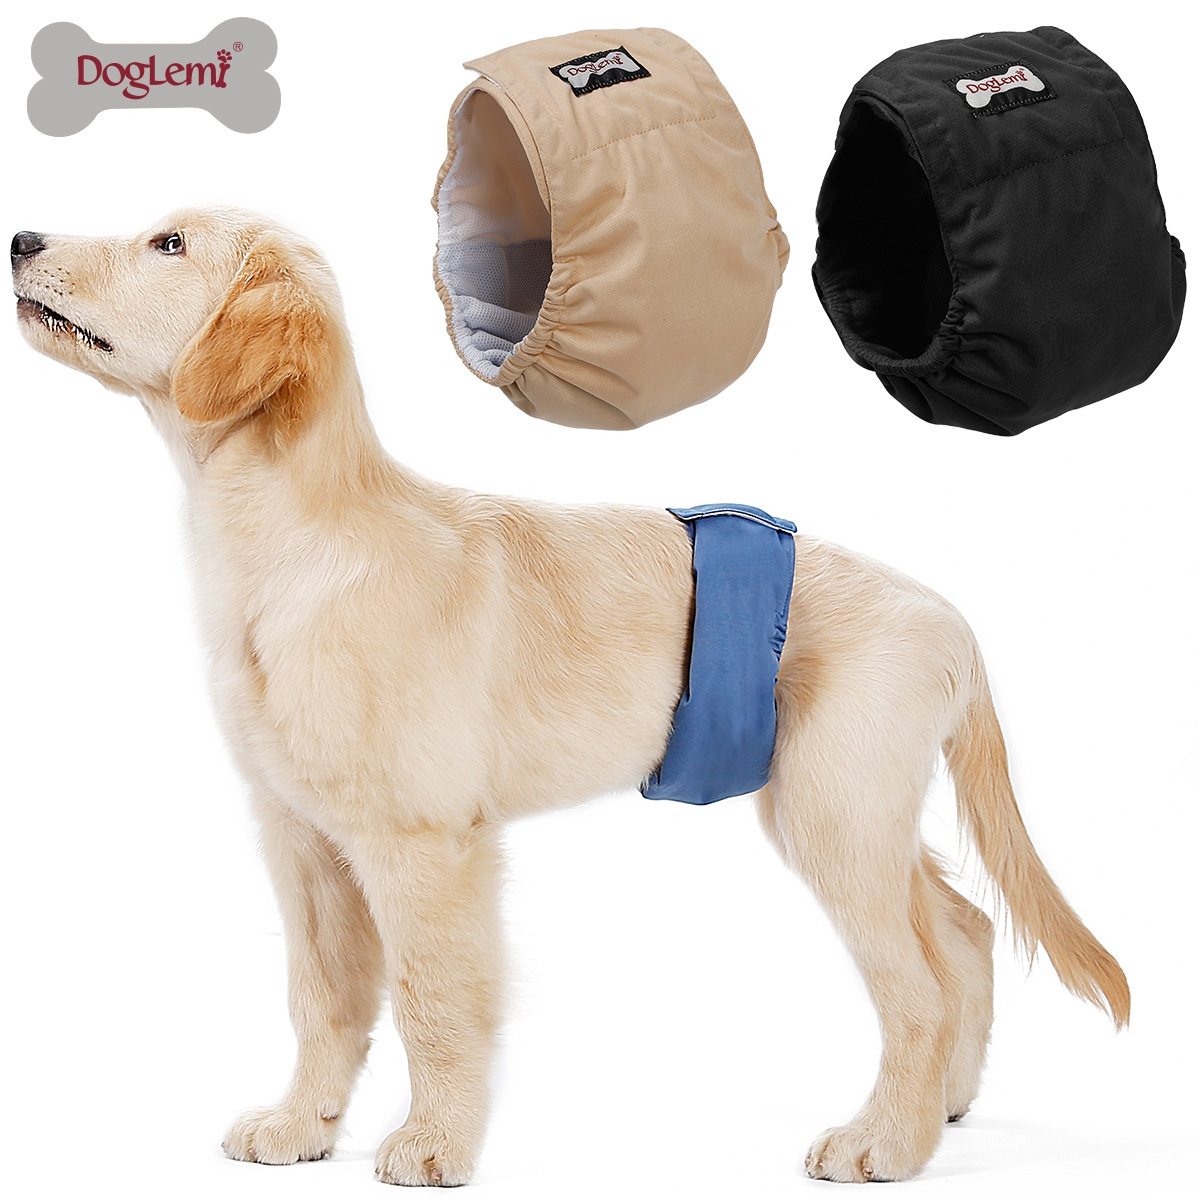 male-dog-washable-diaper 3